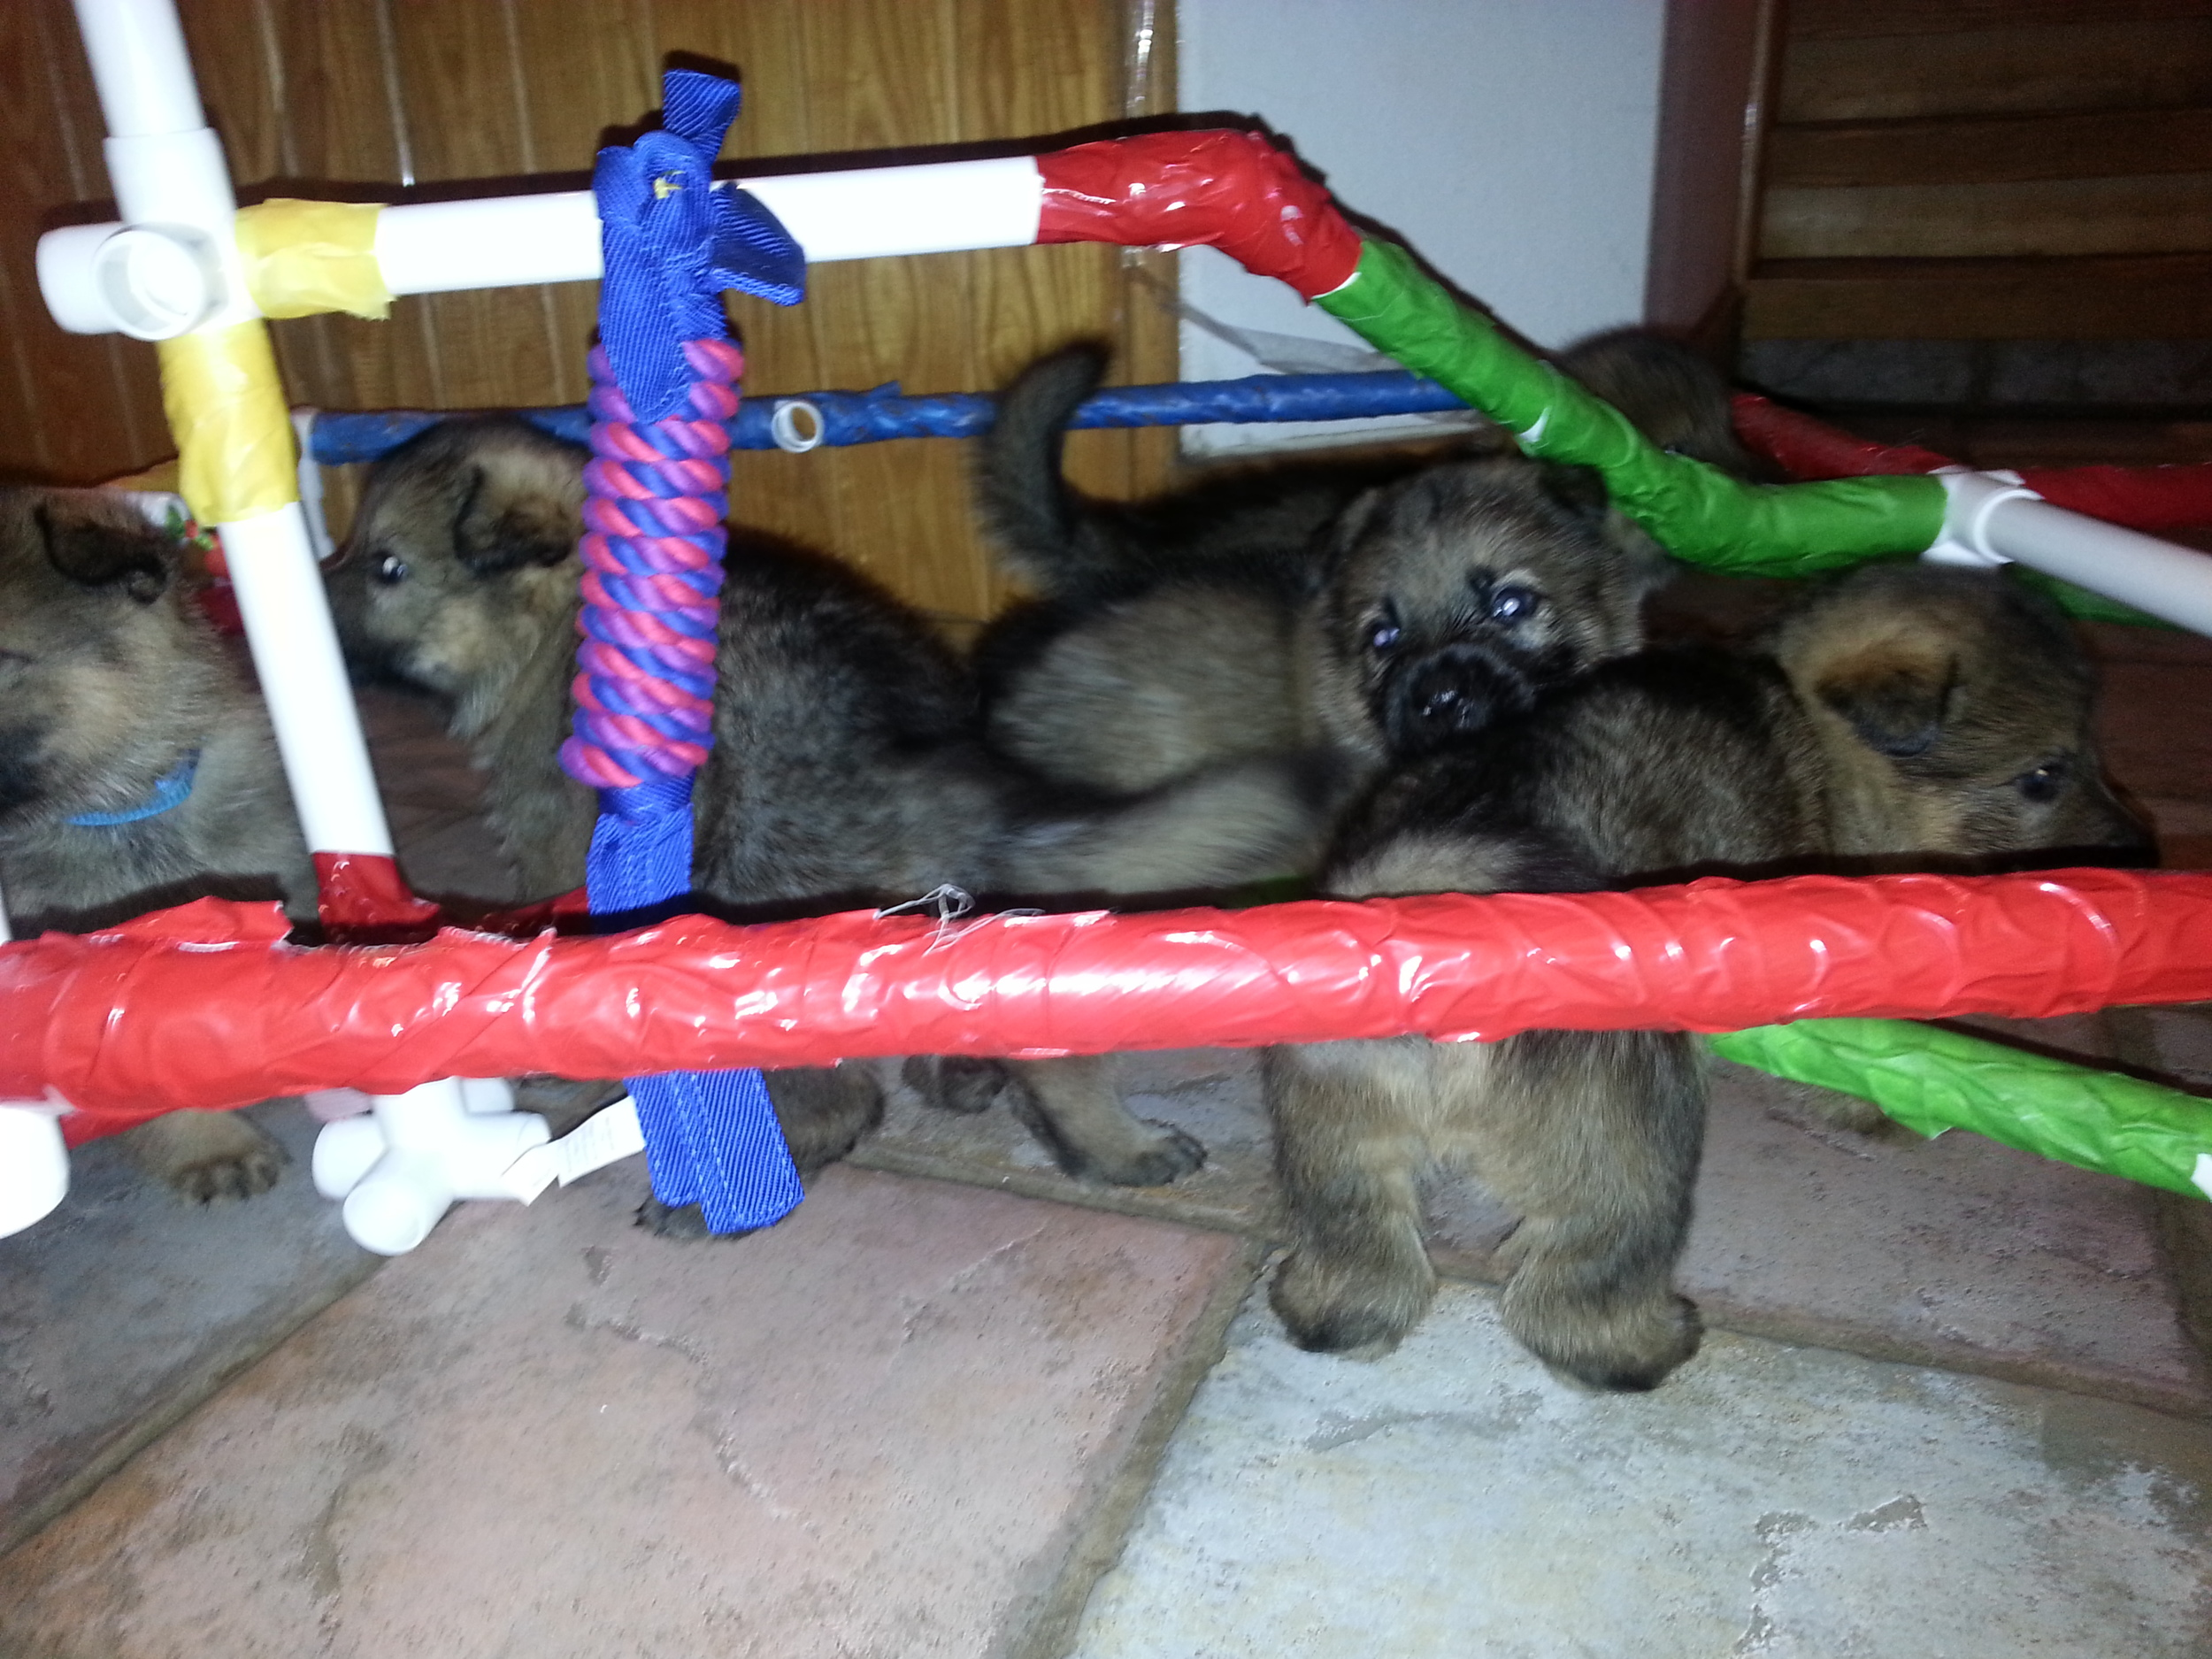 Playing in the puppy gym.